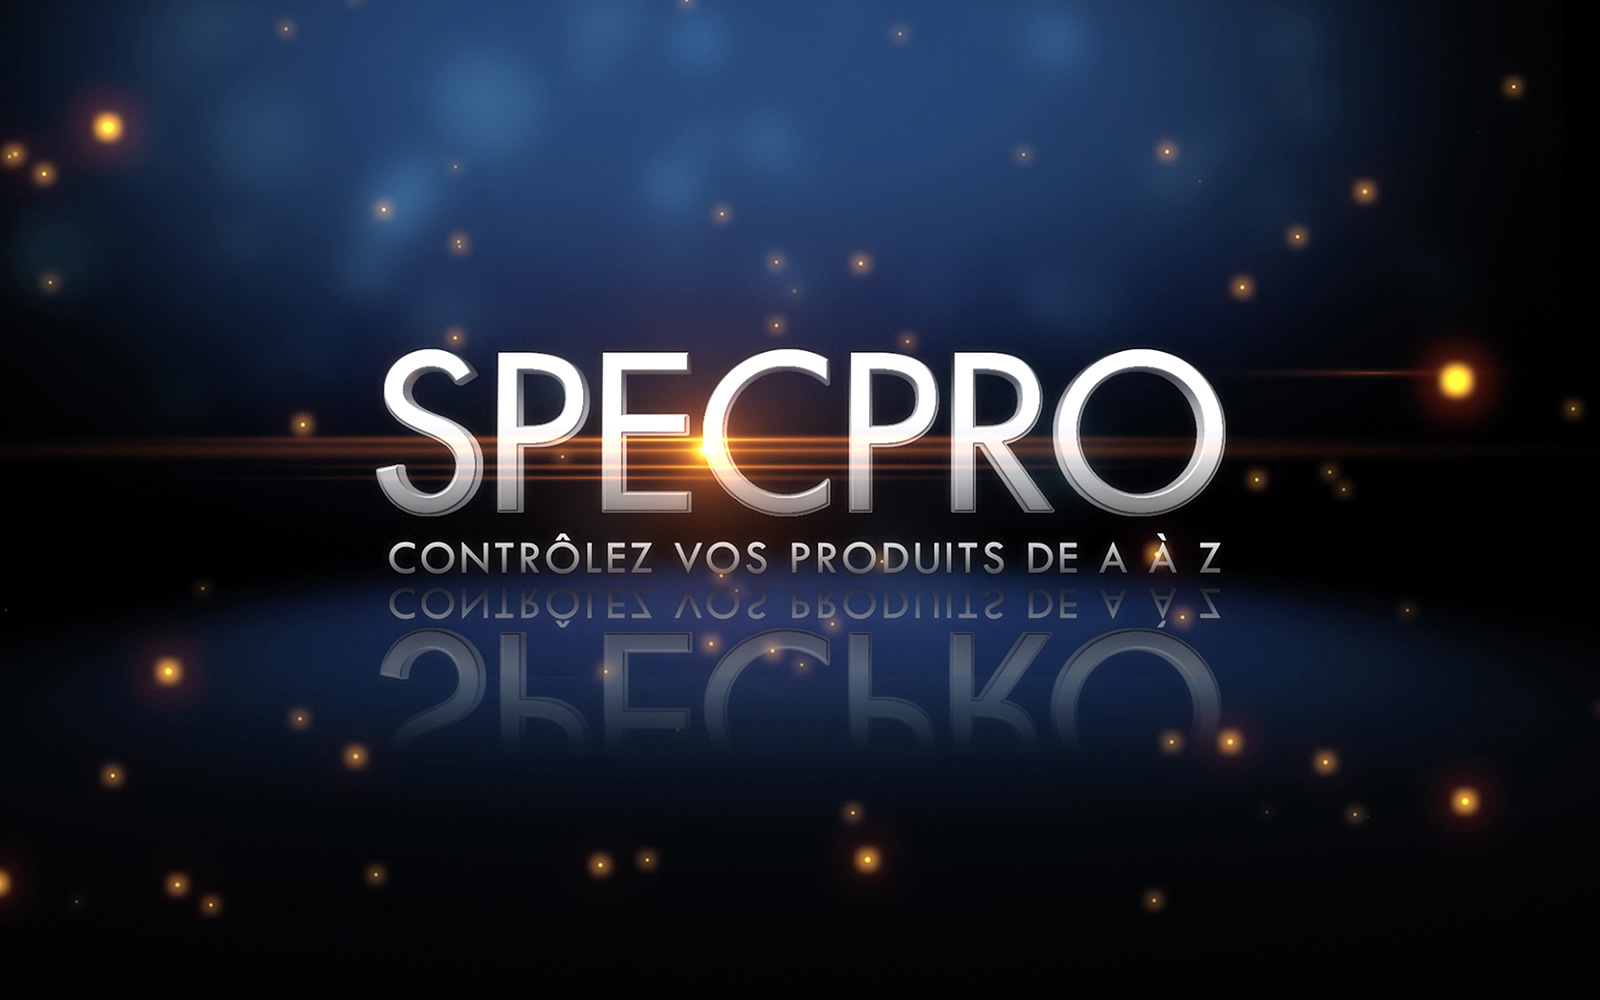 Specpro